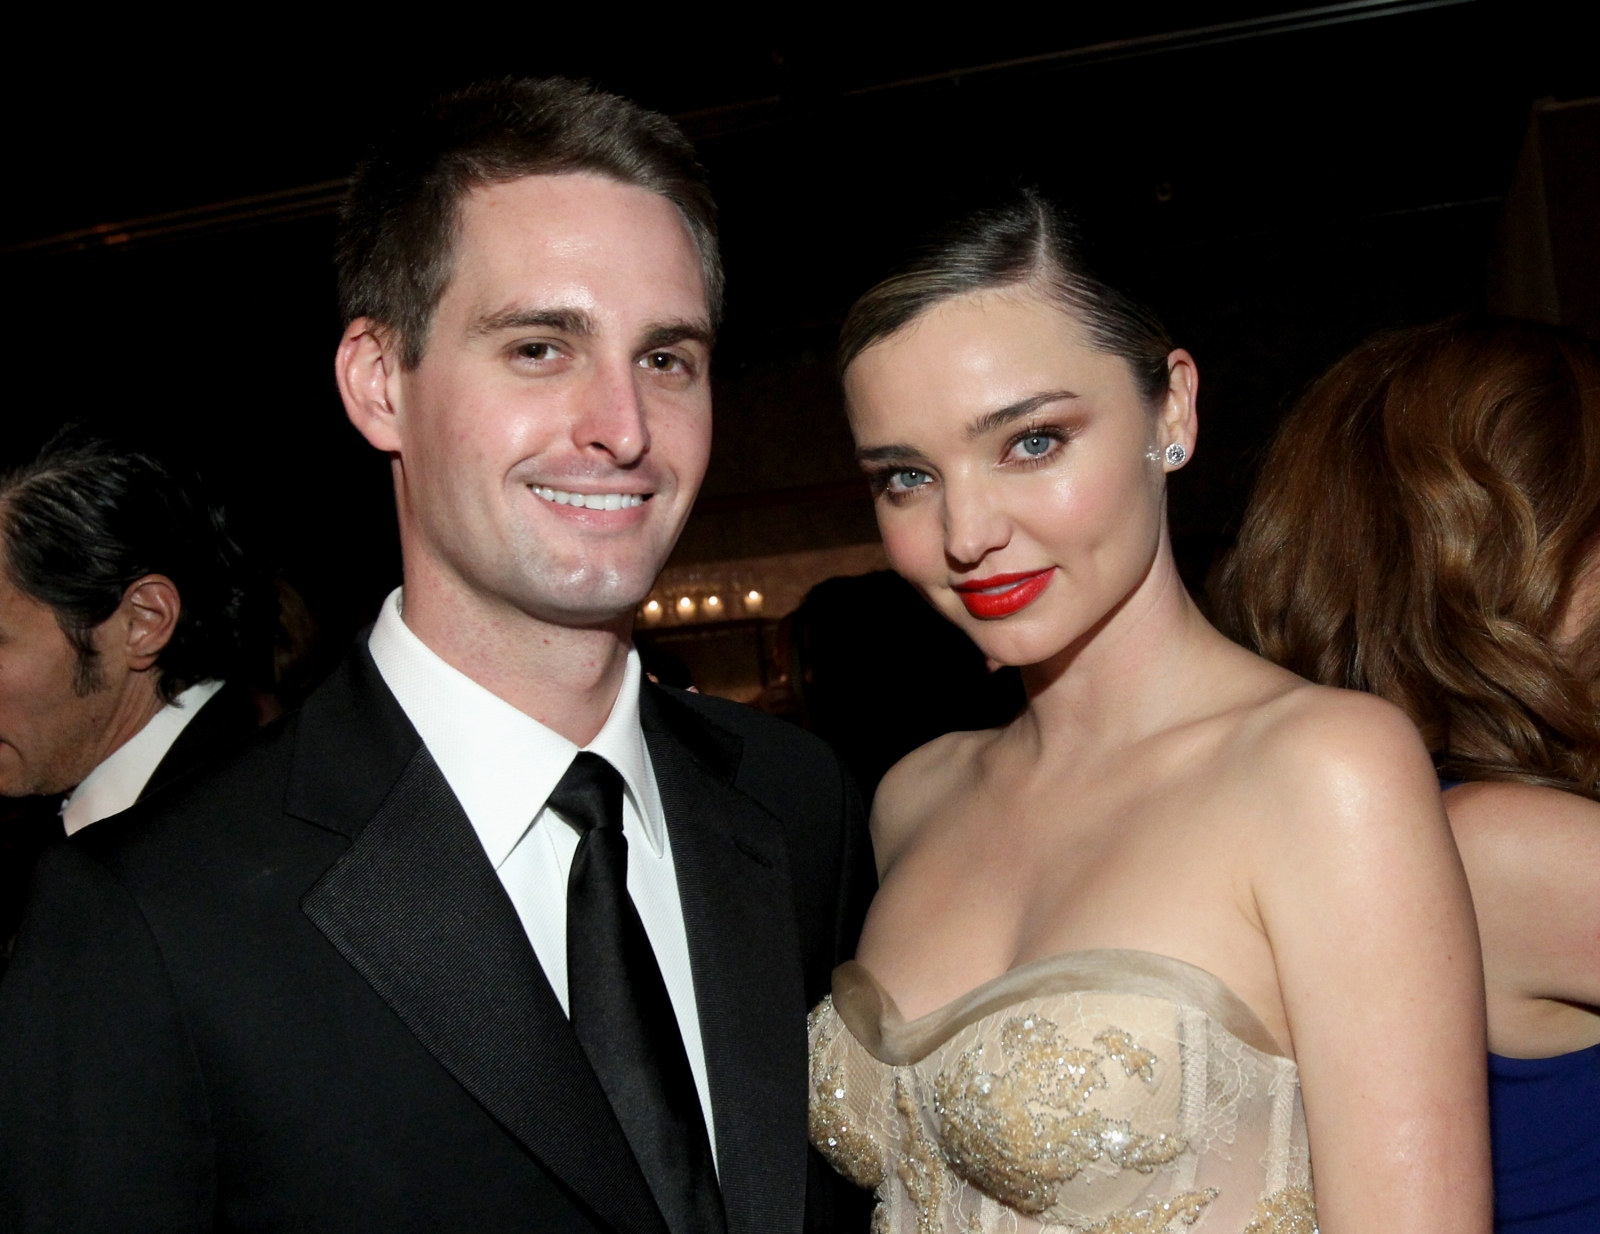 Miranda Kerr's Wedding Dress Photos Are Finally Here